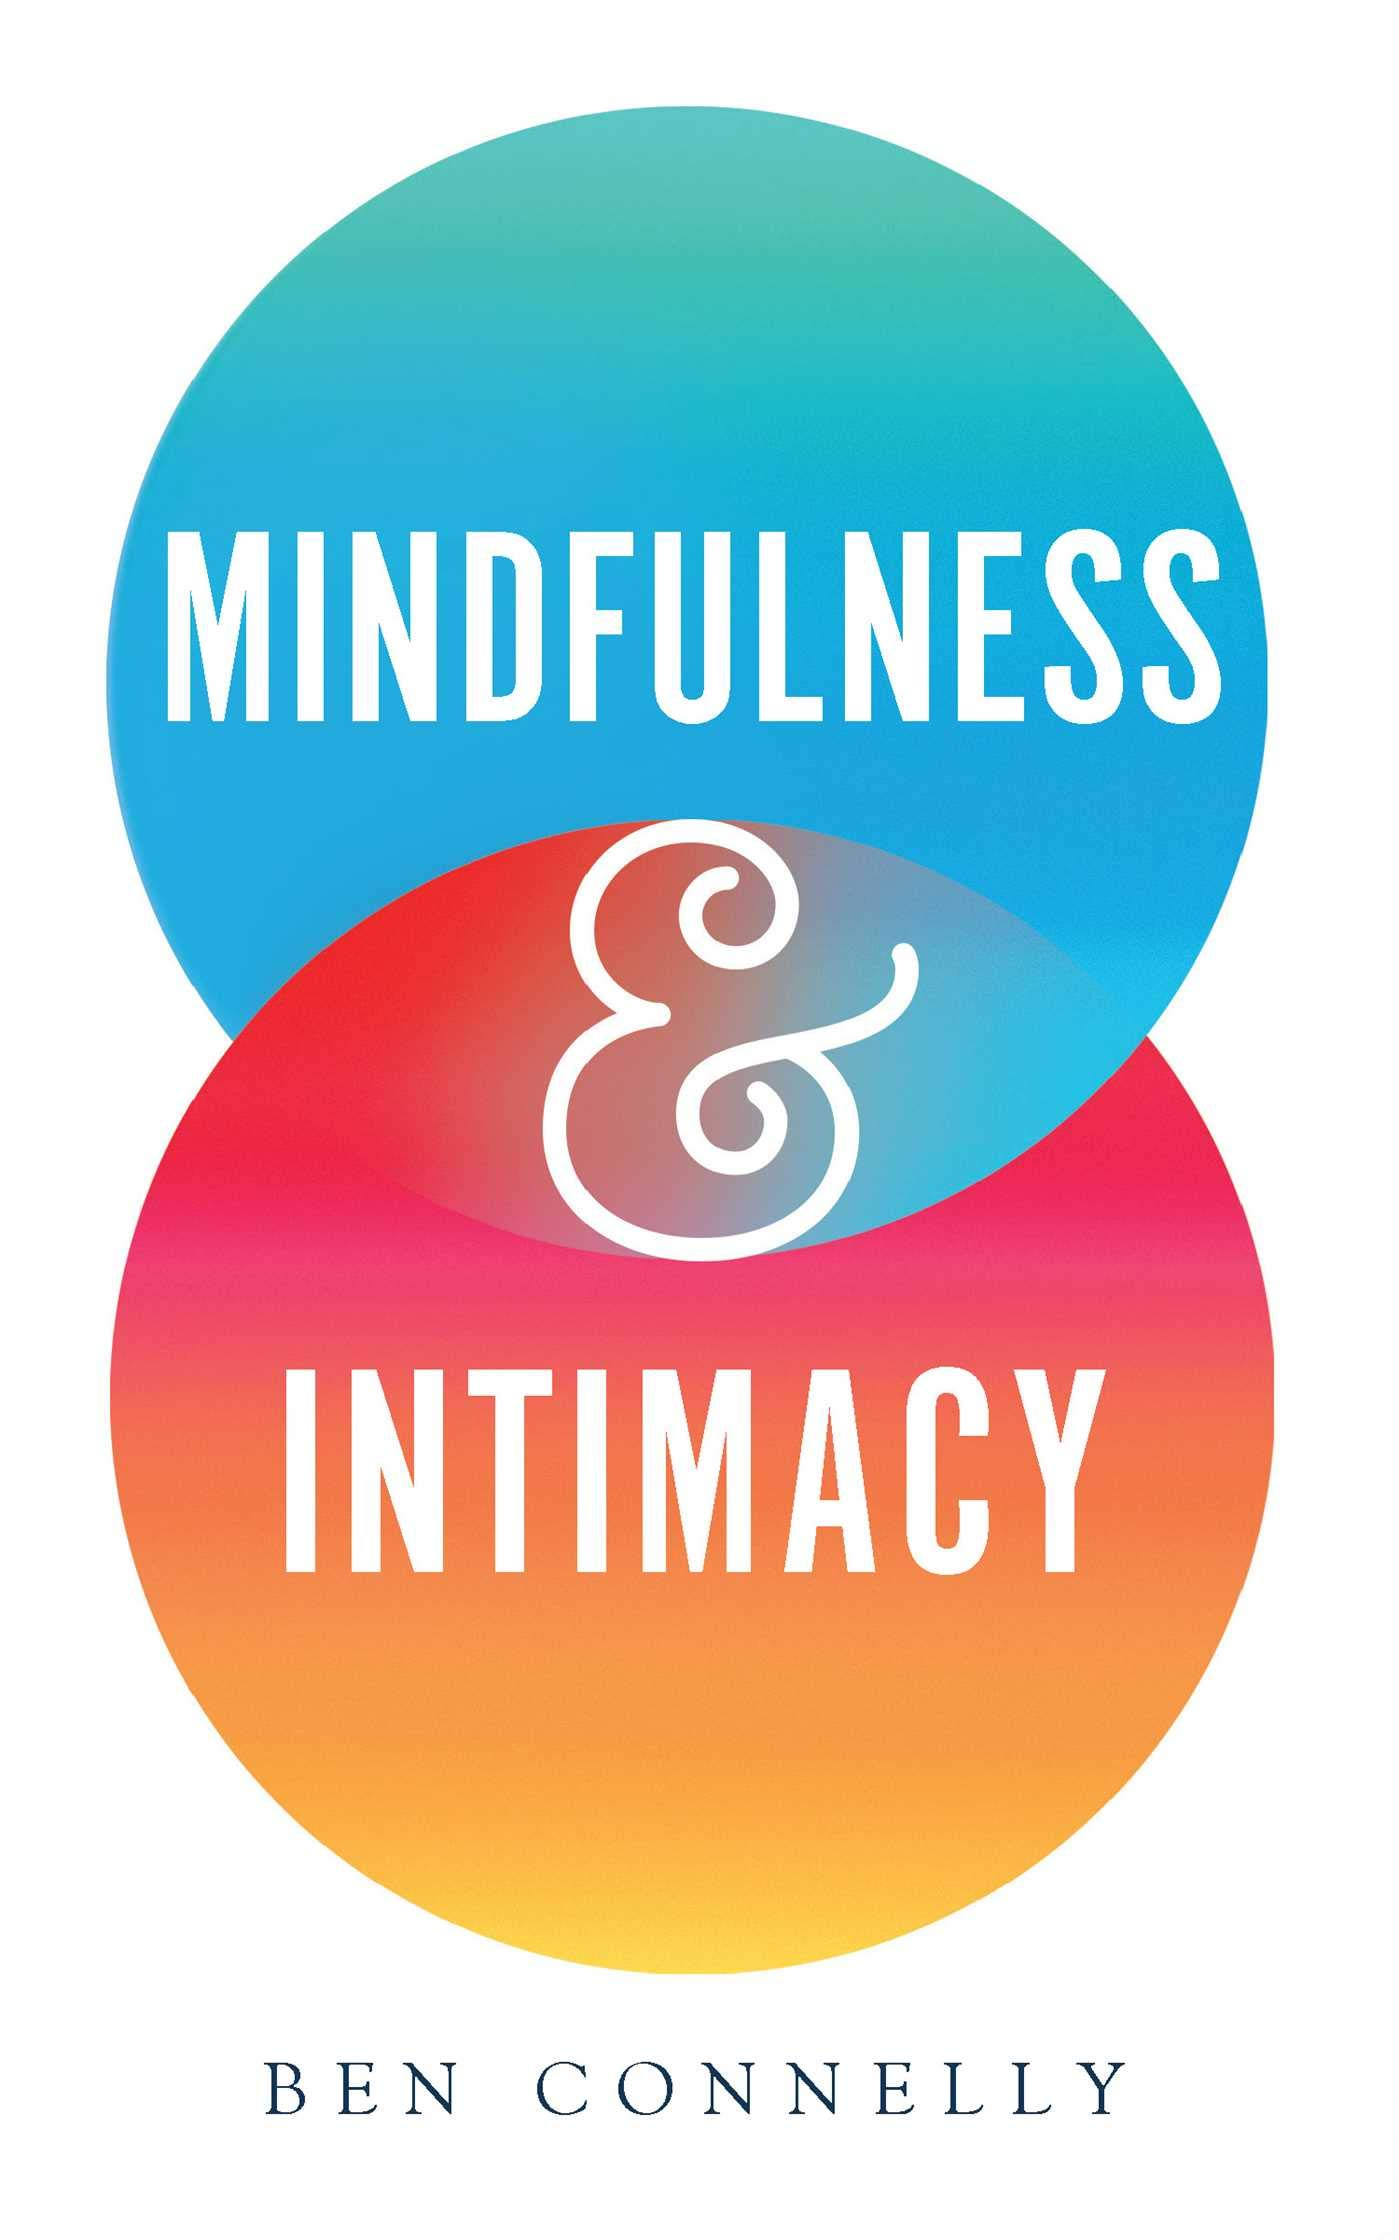 mindfulness-and-intimacy-connelly-cover.jpg